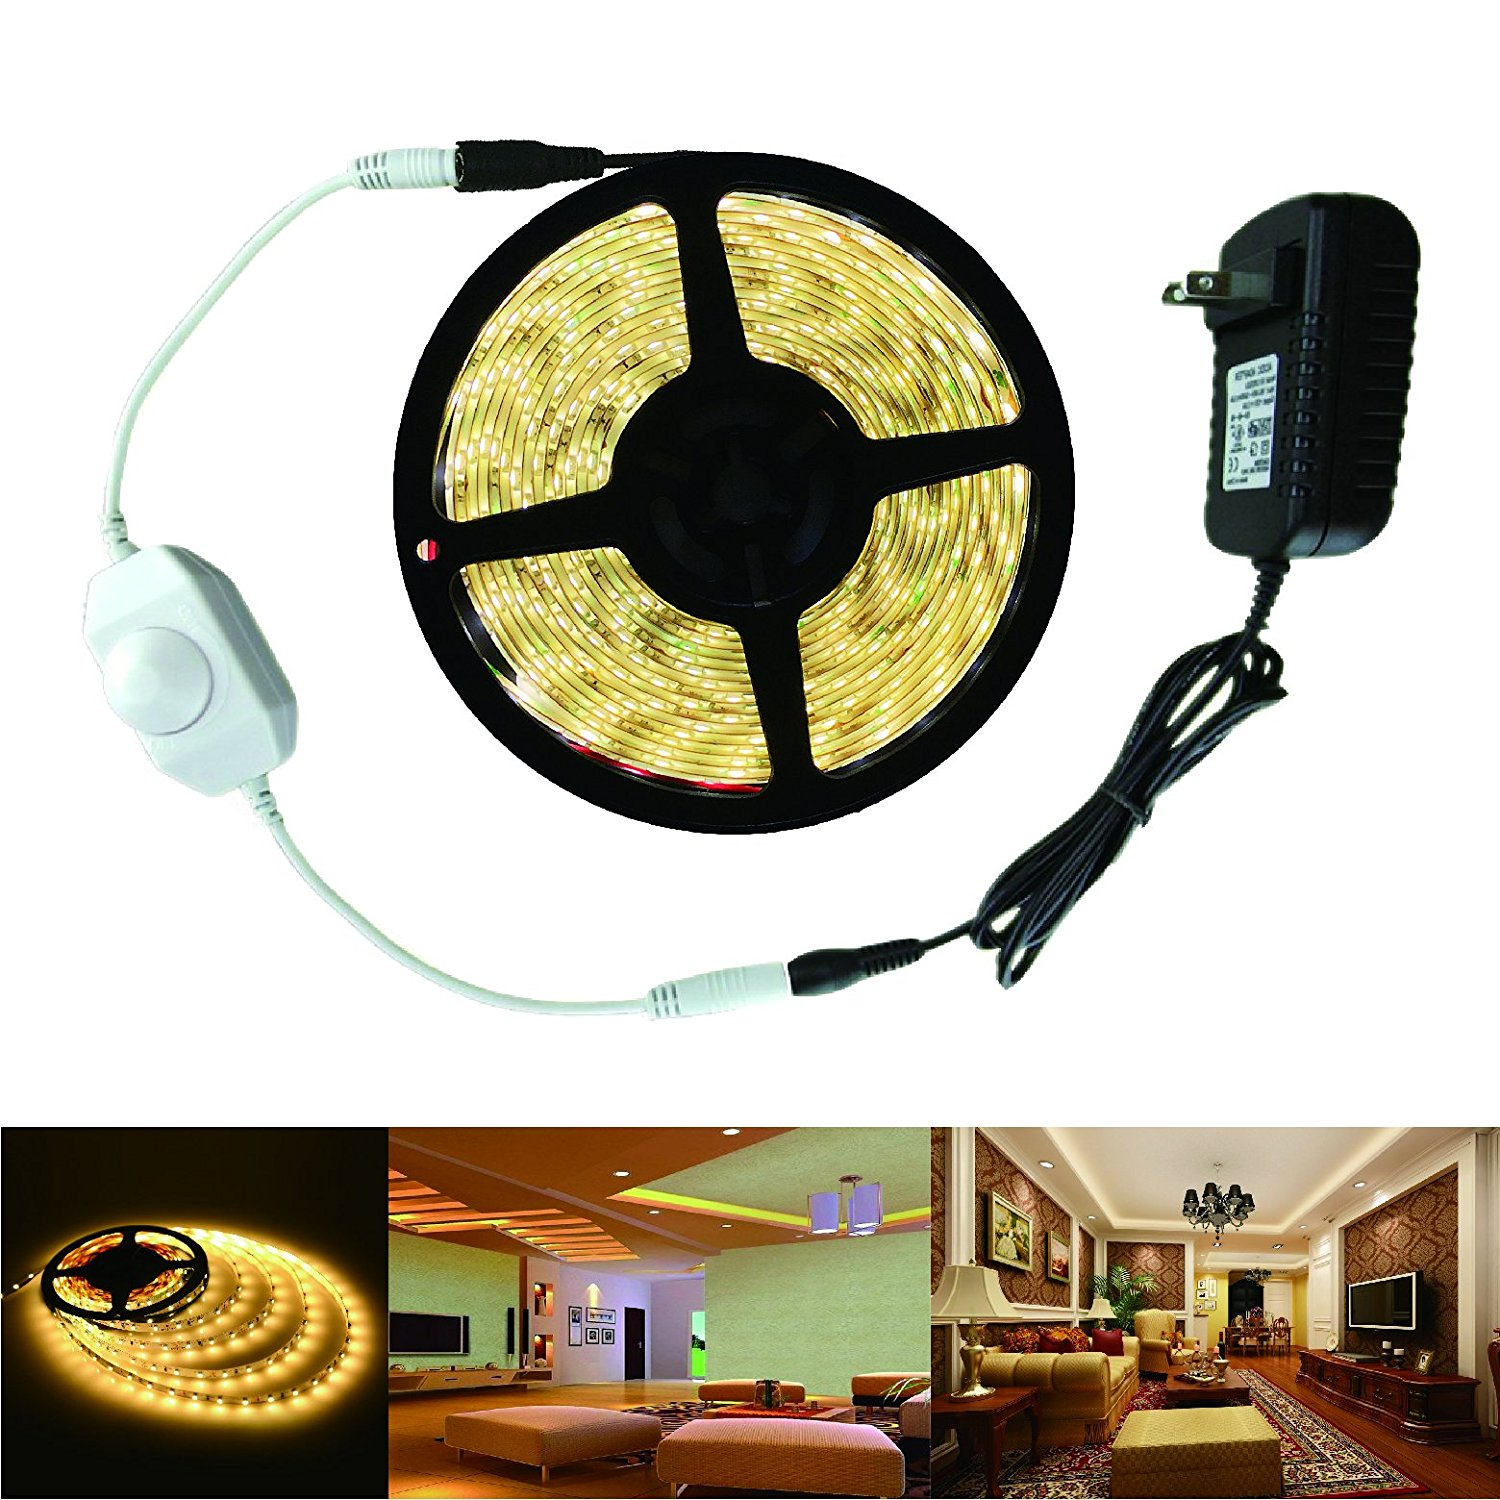 Uplights SMD 3528 Warm White LED Light Strip Kit 4500K 300 LEDs IP65 Waterproof - Includes 2A Power Supply (24 Watt) and Dimmer - LED Tape Light